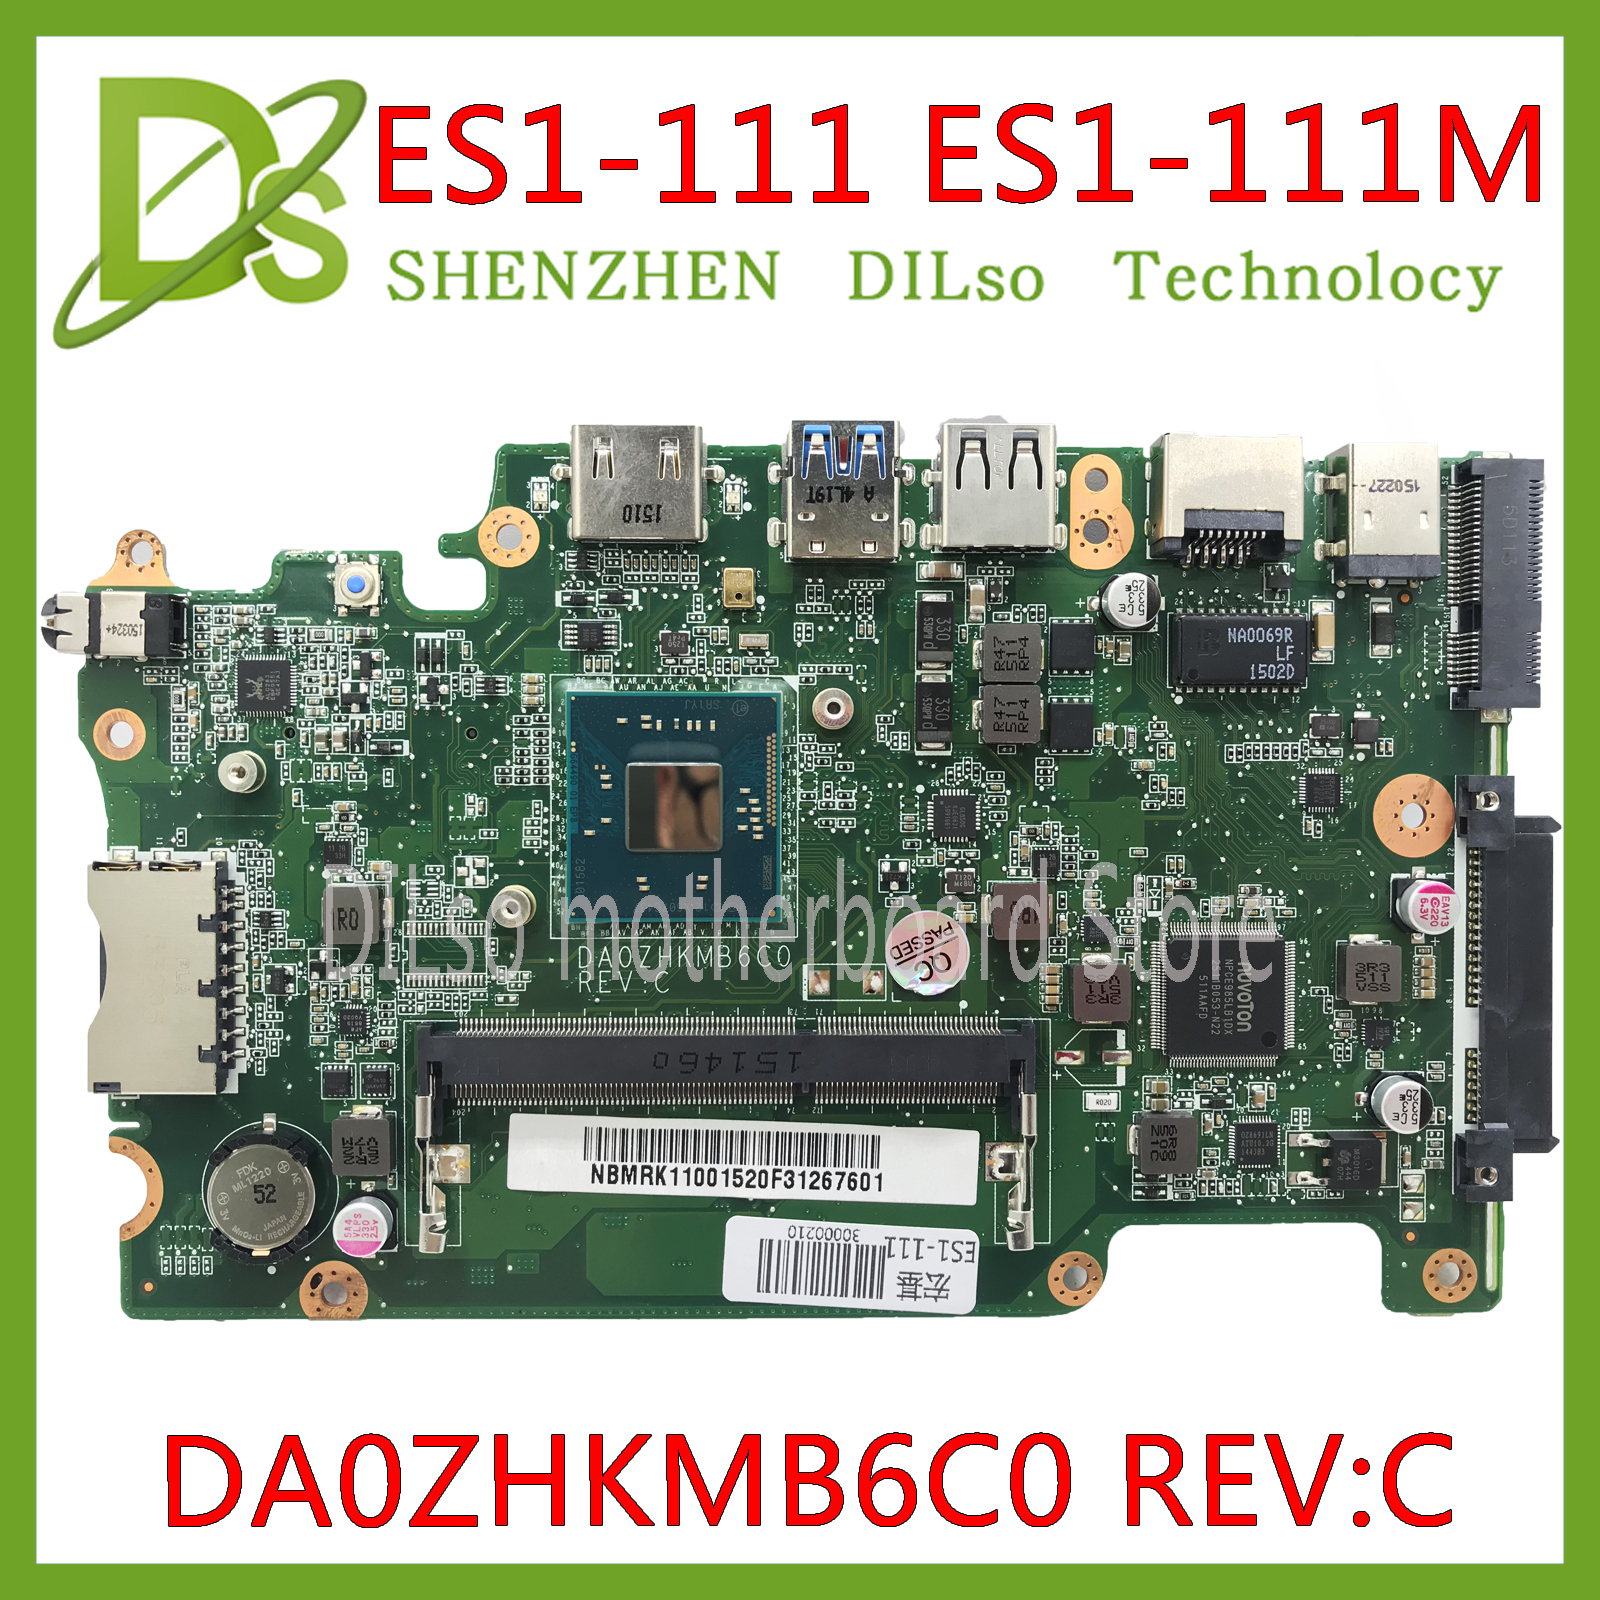 KEFU DA0ZHKMB6C0 Mainboard For Acer Aspire ES1-111 E3-112 V3-112P Laptop Motherboard DDR3 Celeron Processor Work 100% Original